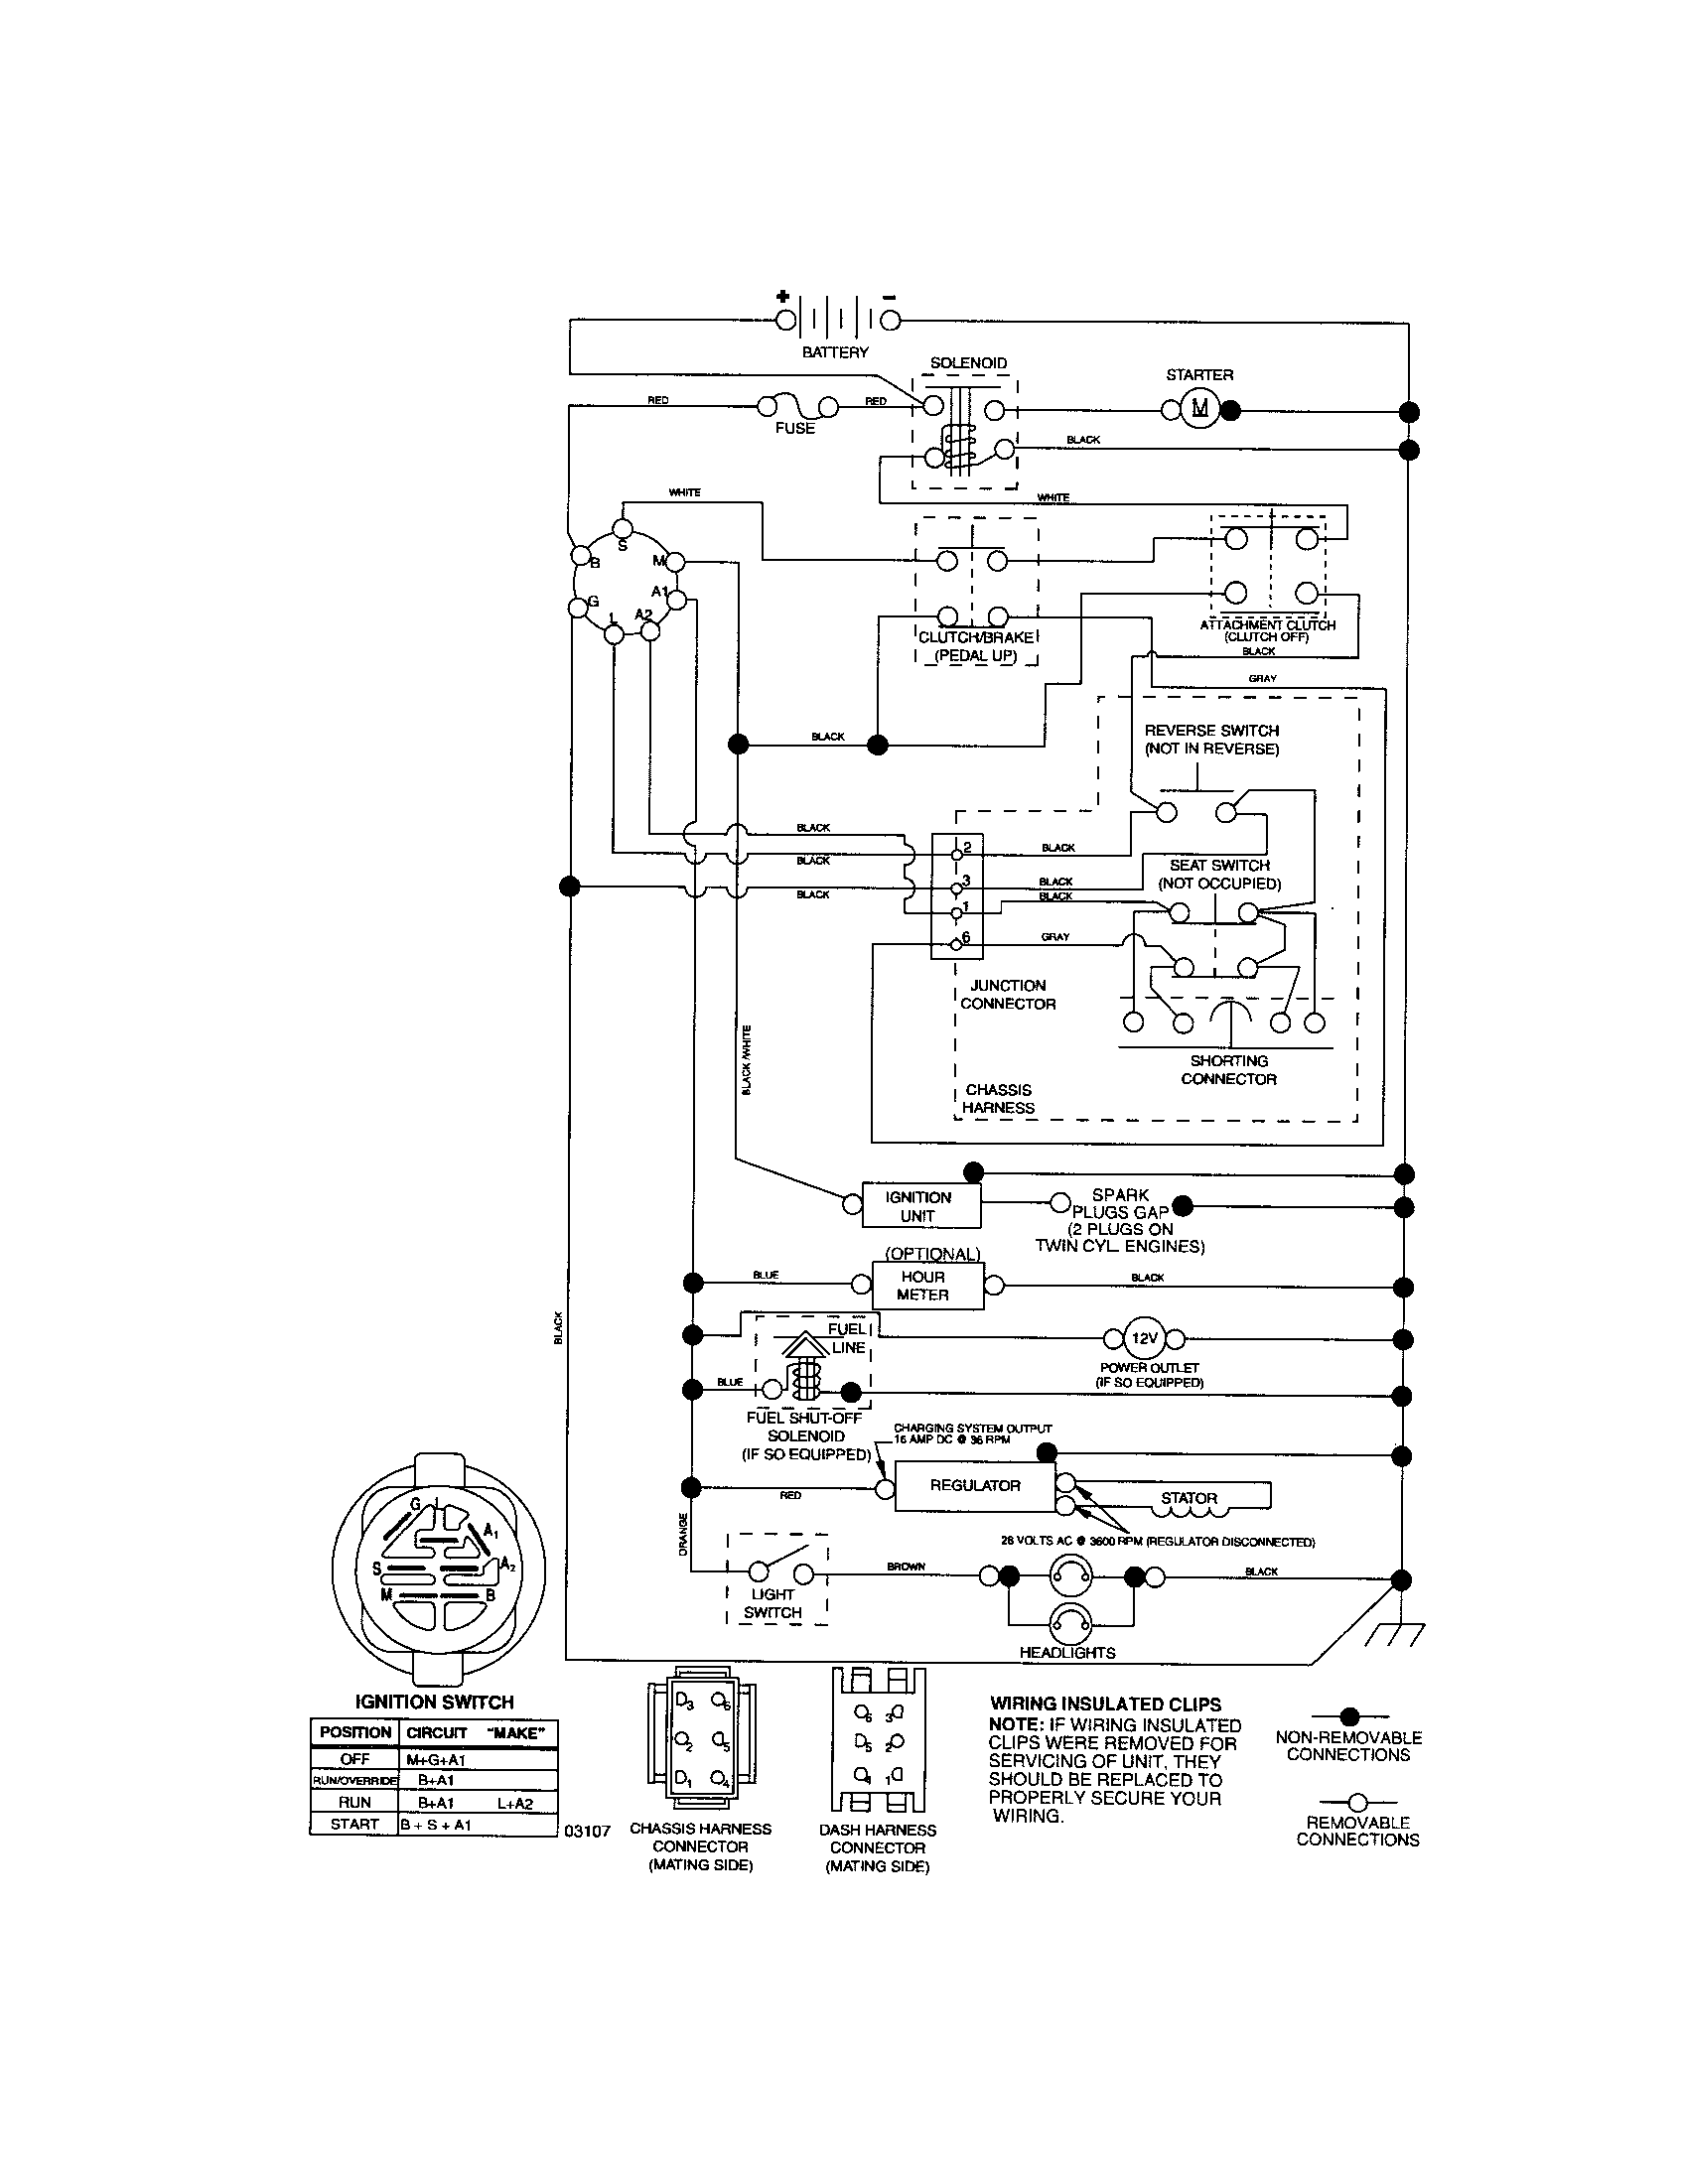 craftsman riding mower electrical diagram wiring diagram craftsman rh pinterest com craftsman lawn mower wiring schematic mtd lawn mower wiring diagram